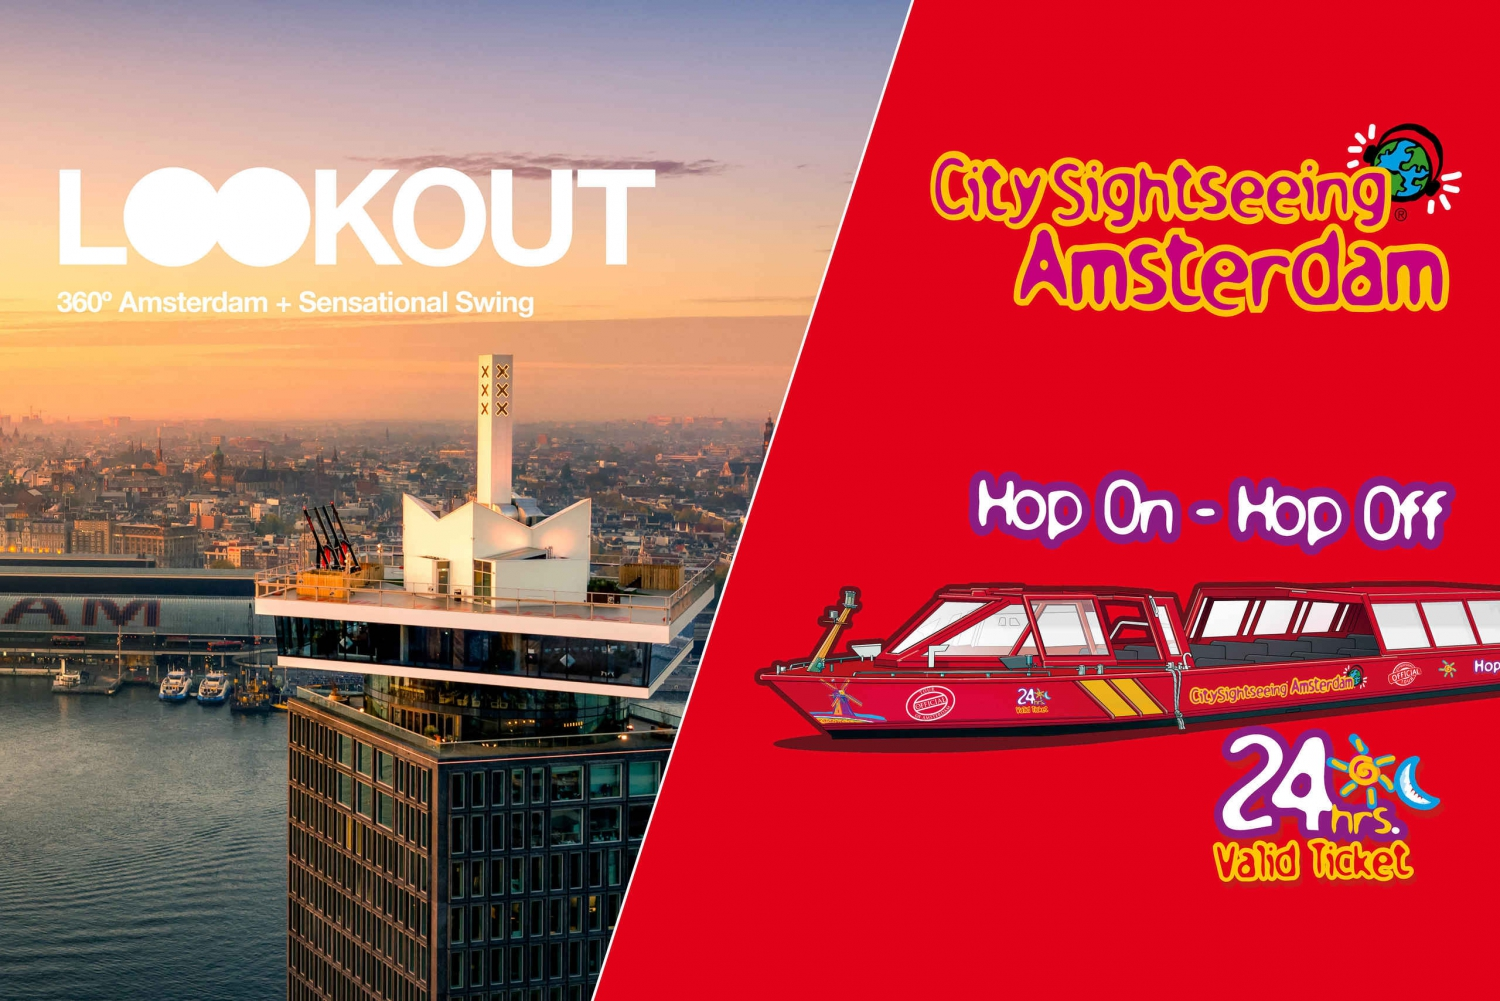 Amsterdam Hop-On Hop-Off Boat Ticket & A'DAM Lookout